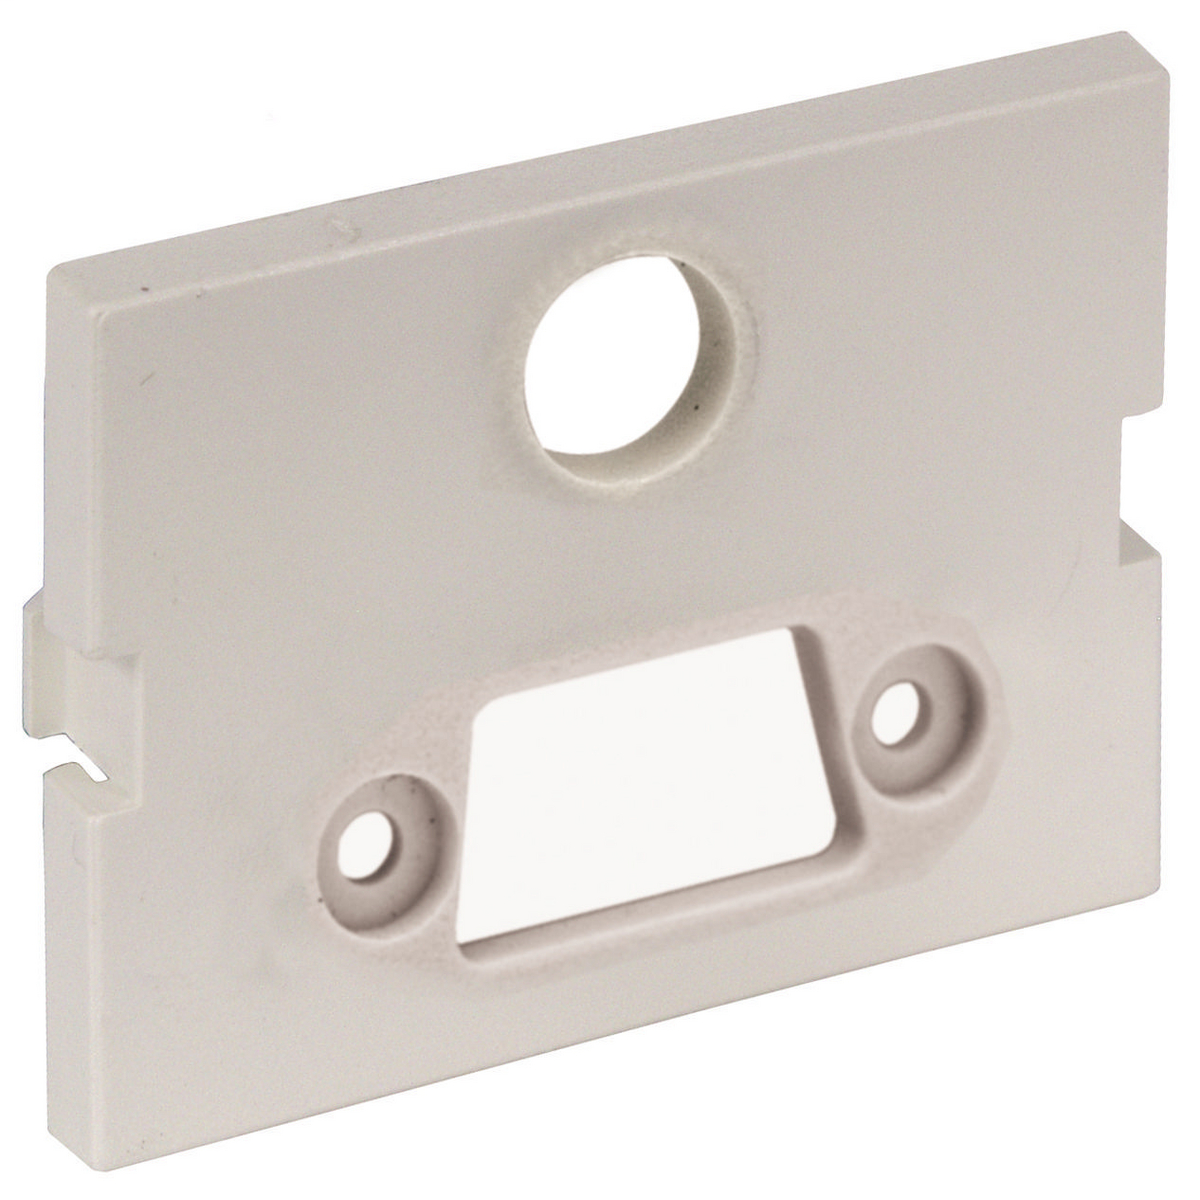 Hubbell Premise Wiring Products, iStation Module, SVGA with 3.5 MMStereo Jack, 1.5-Unit, Screw Terminal, Office White